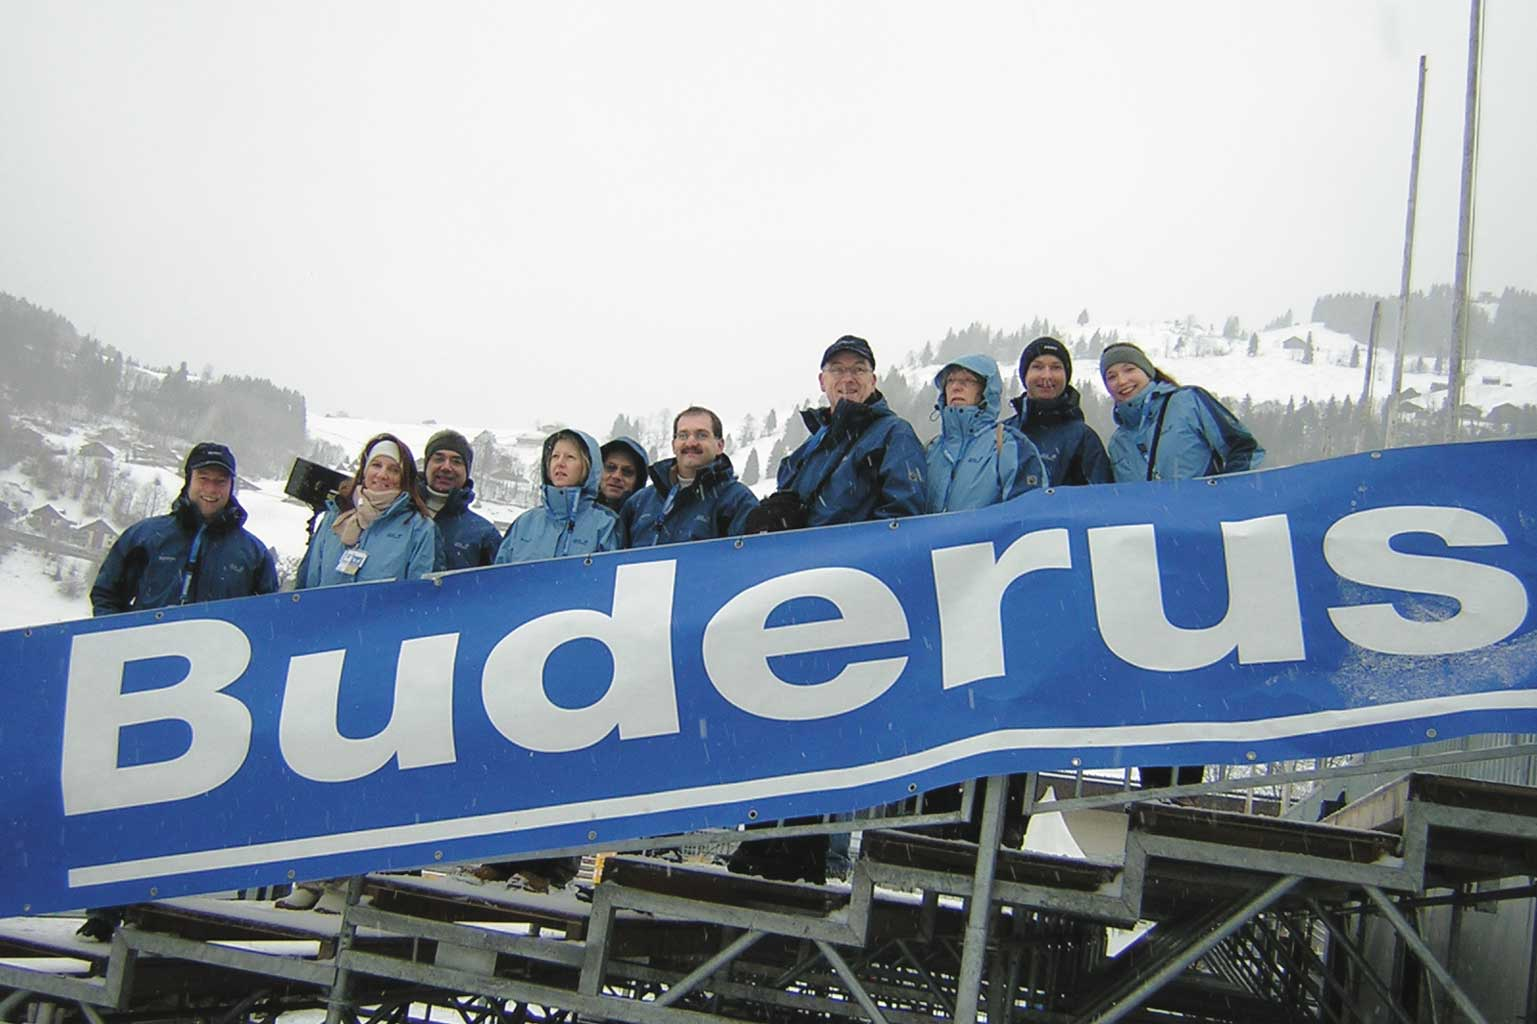 Team Buderus during the Four Hills Tournament